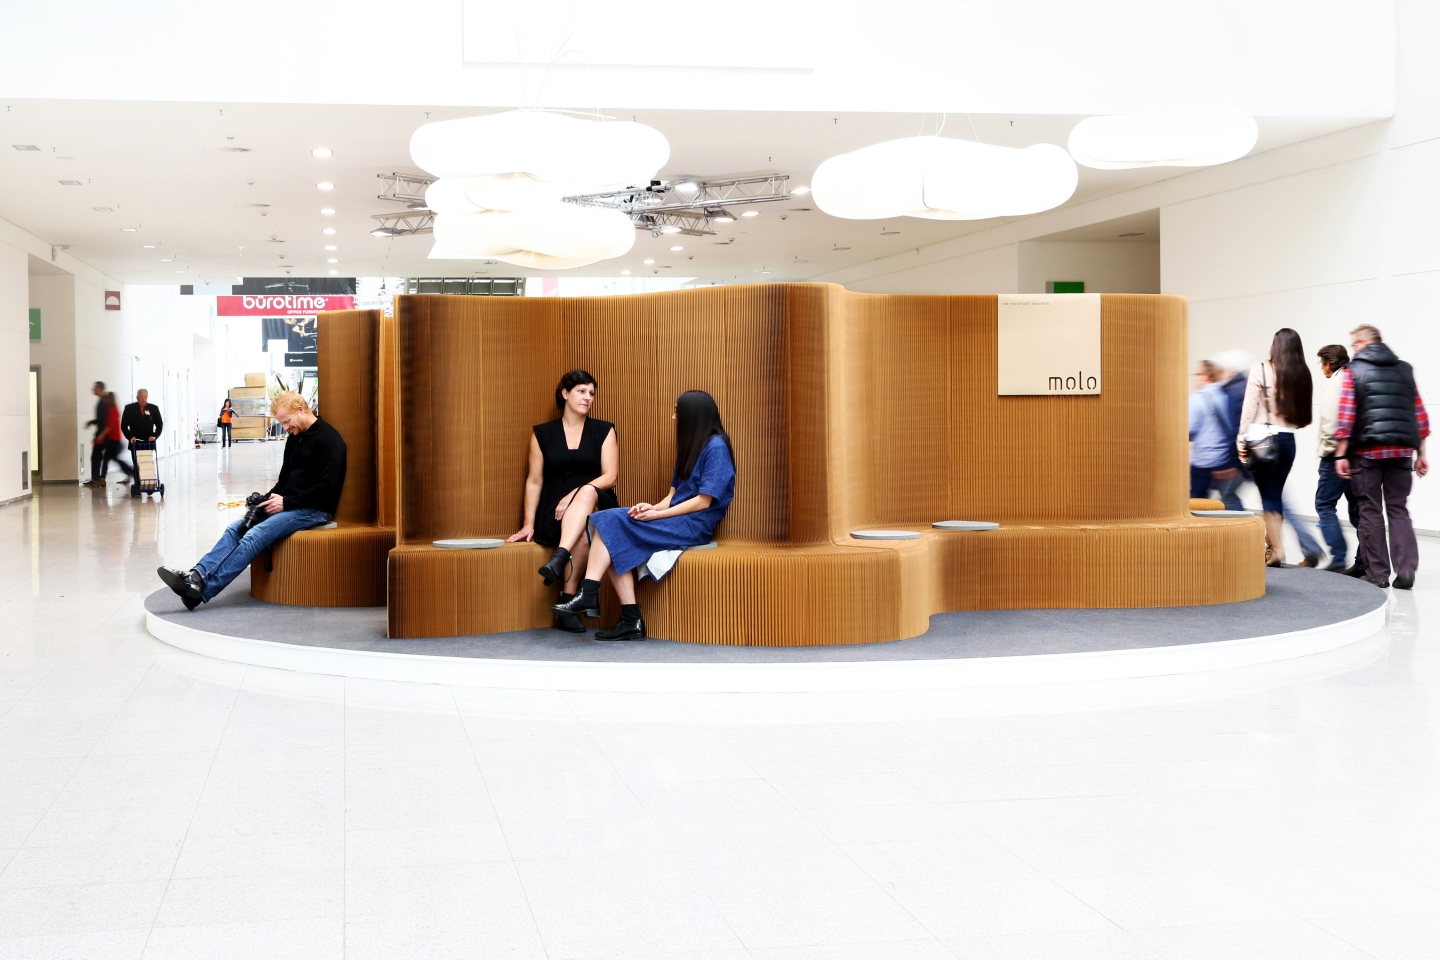 modular paper seating illuminate by its cloud lighting - accordion paper furniture by molo - a series of benchwalls connected by their magnetic end panels and installed at Orgatec 2014